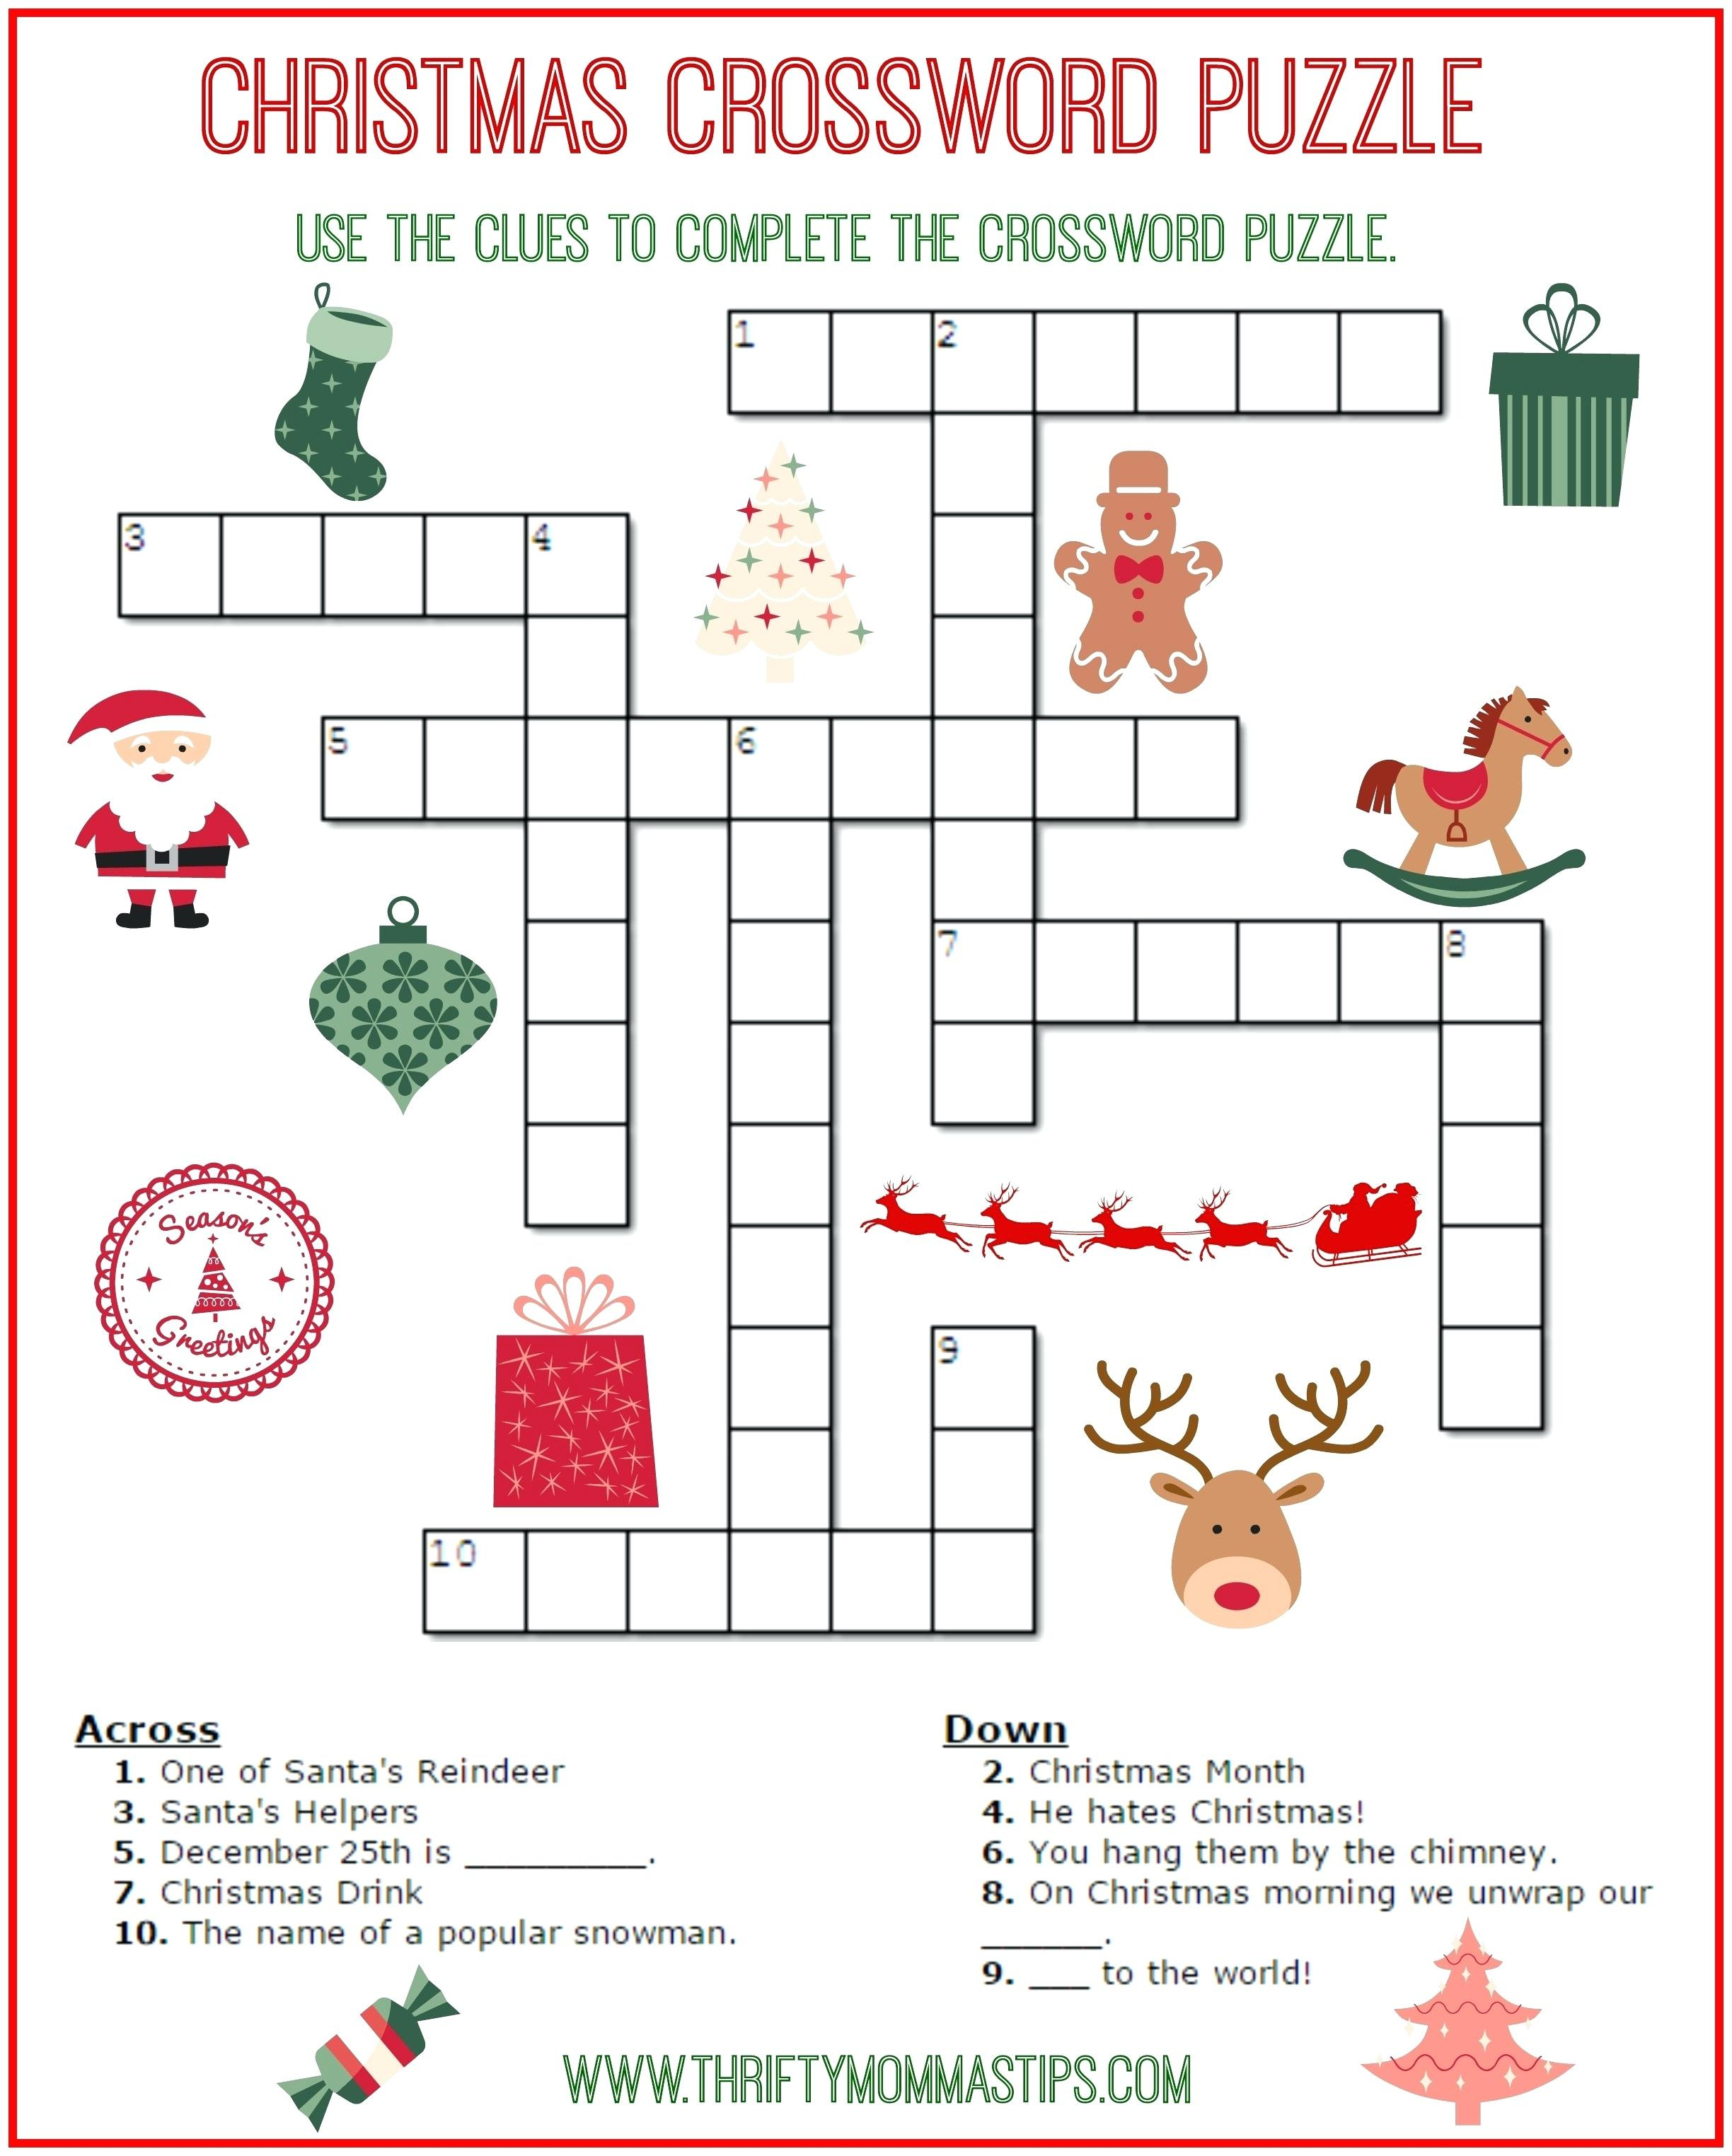 Free Printable Crossword Puzzles For Kids State Capitals Crossword - Printable Crossword Puzzles 5Th Grade